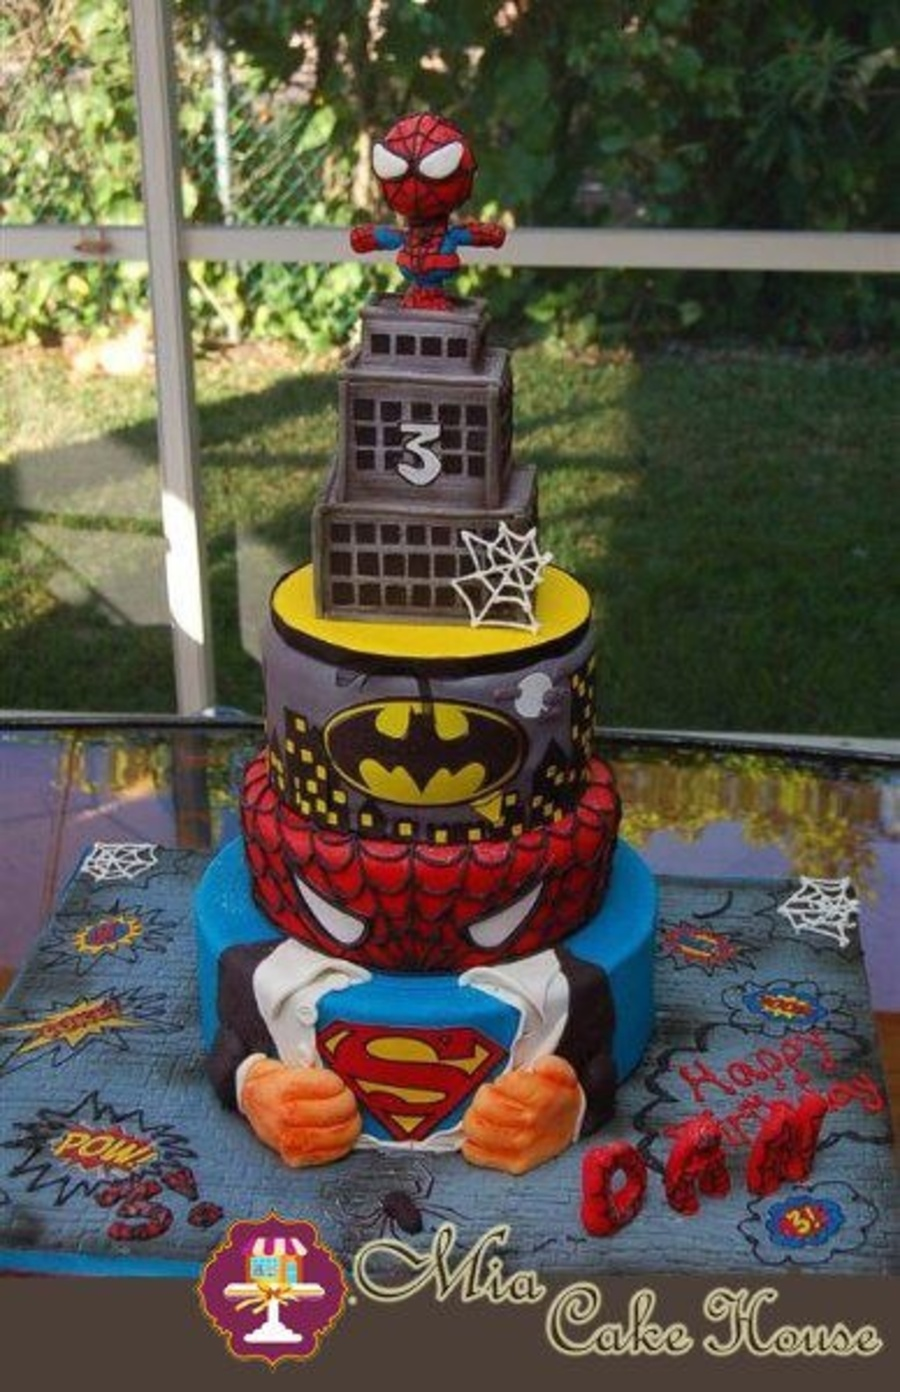 superman design for birthday party ; 900_866284ZsfR_my-son-wanted-3-different-cakes-for-his-birthday-party-spiderman-batman-and-superman-we-decided-to-design-a-cake-that-includes-his-three